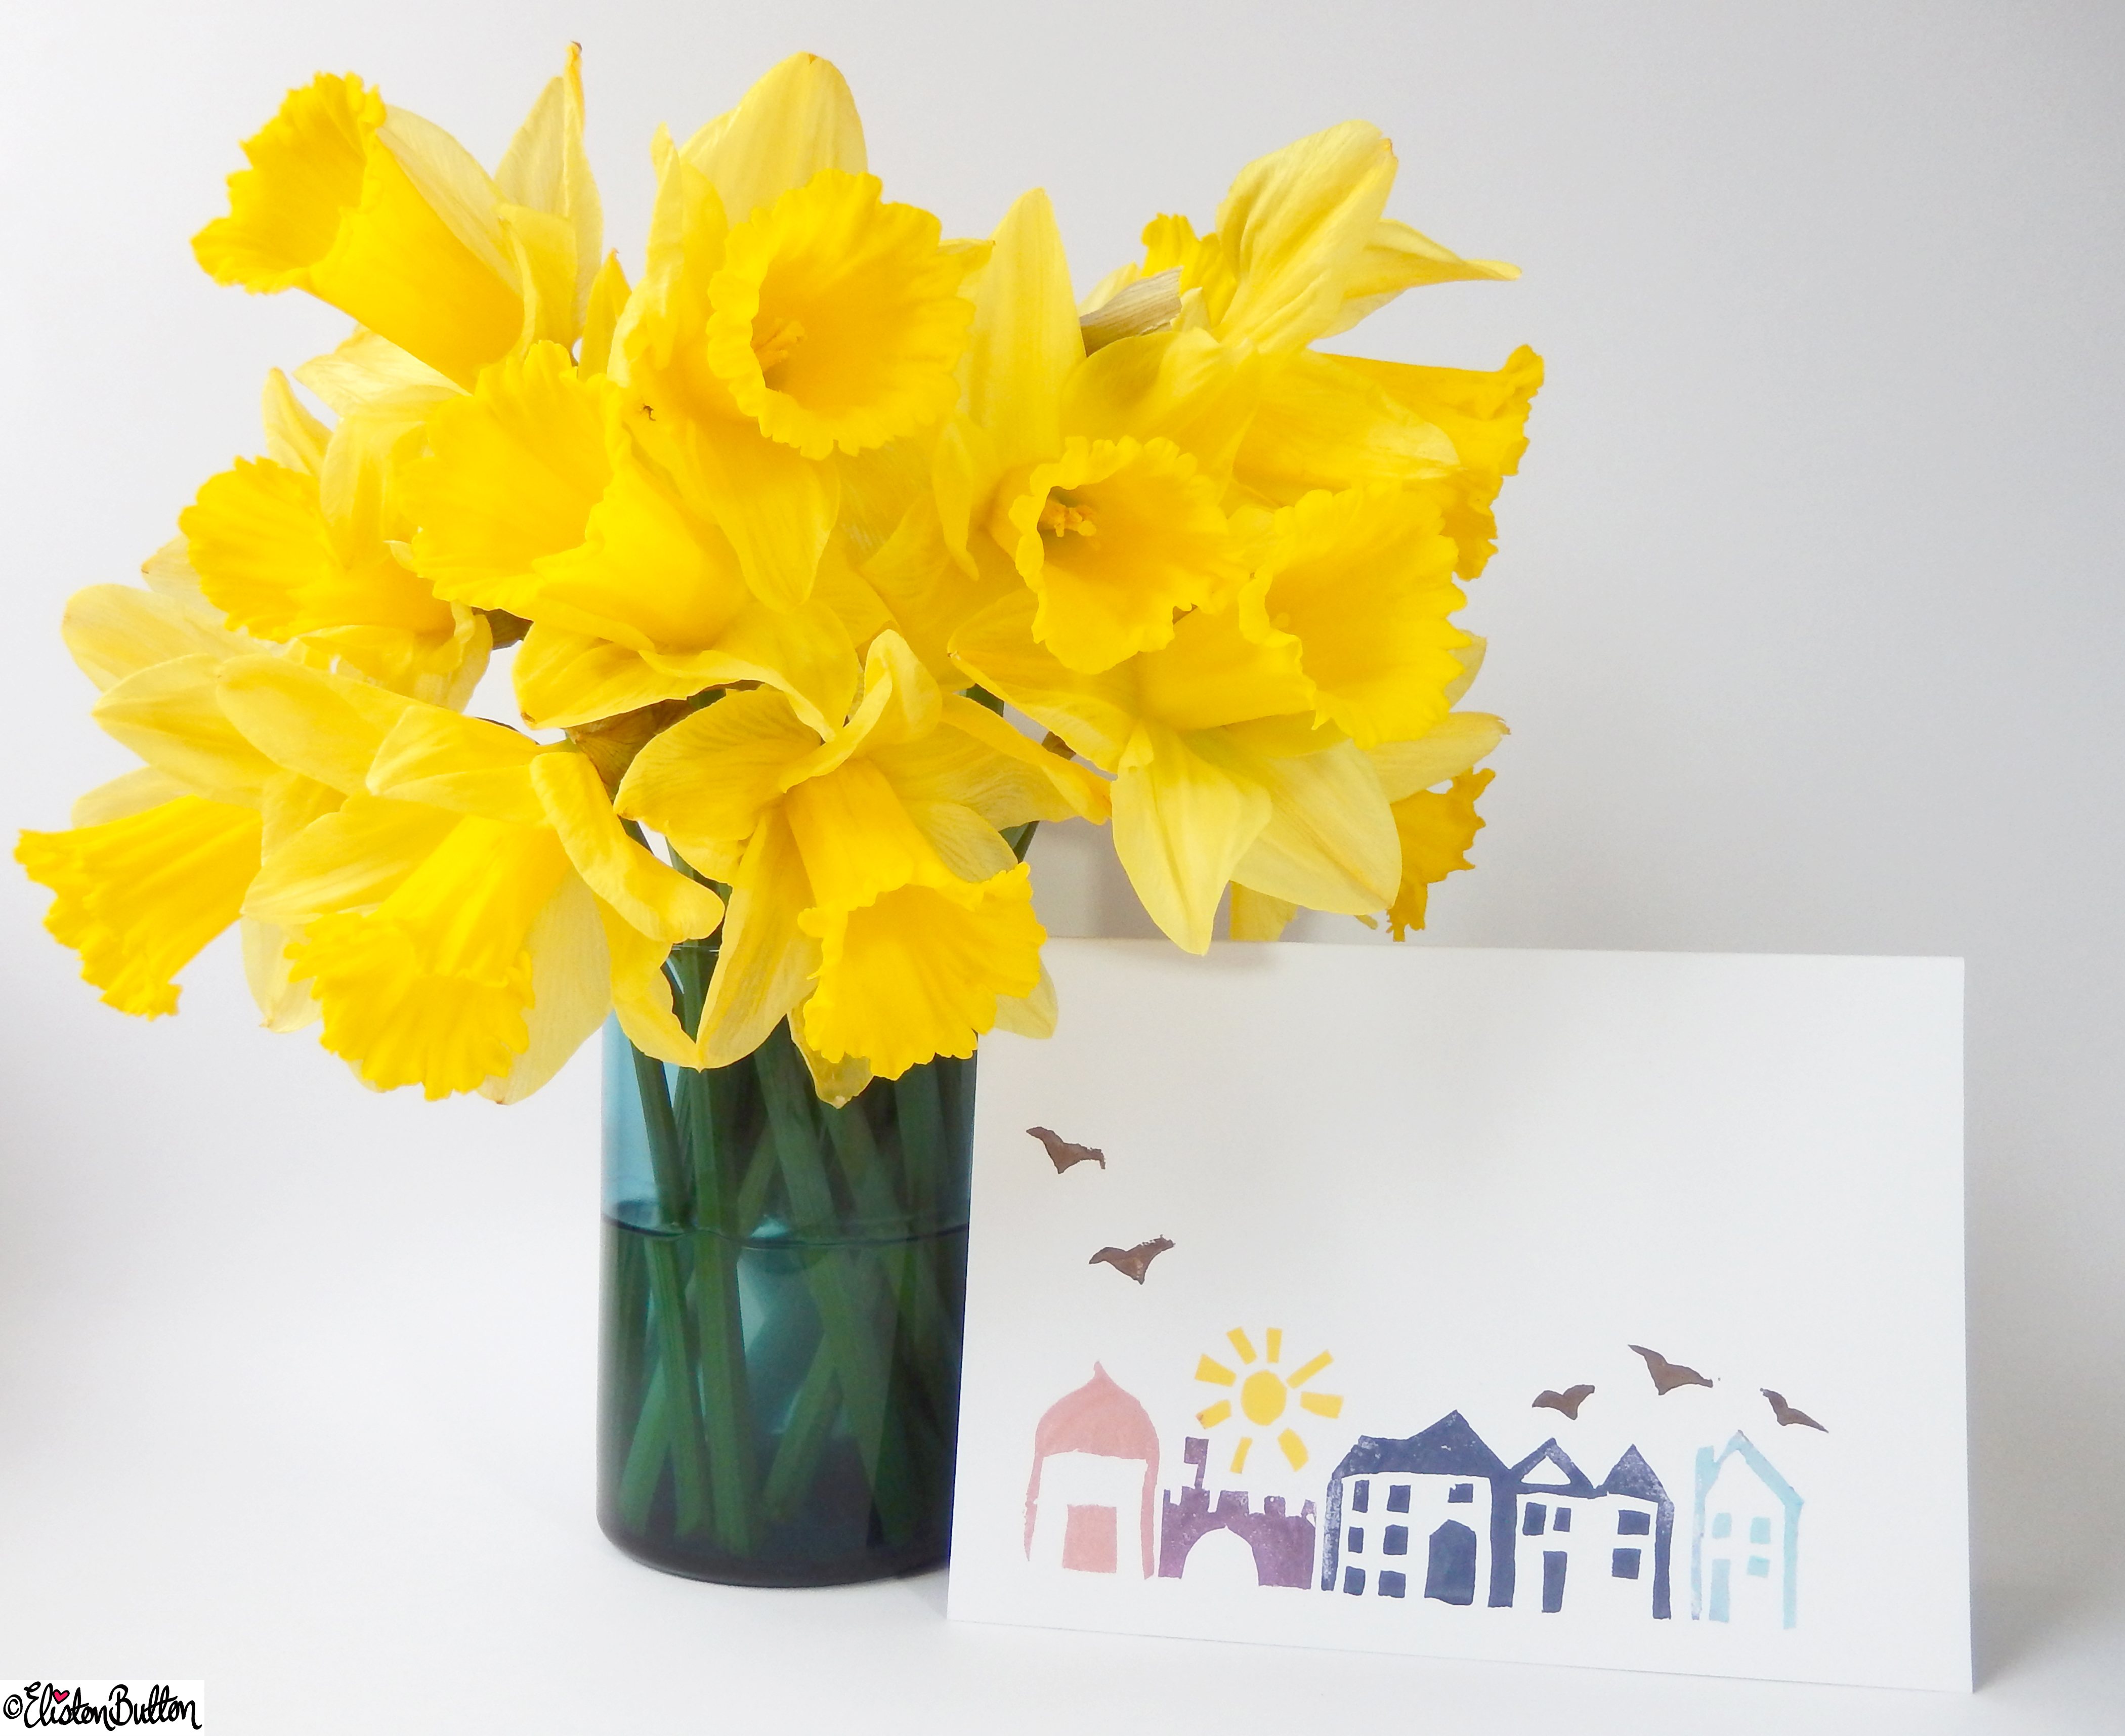 Hand Printed Streetscape Cards - Stood Up with Daffodils - Create 28 - No. 13 - Hand Printed Streetscape Cards at www.elistonbutton.com - Eliston Button - That Crafty Kid – Art, Design, Craft & Adventure.